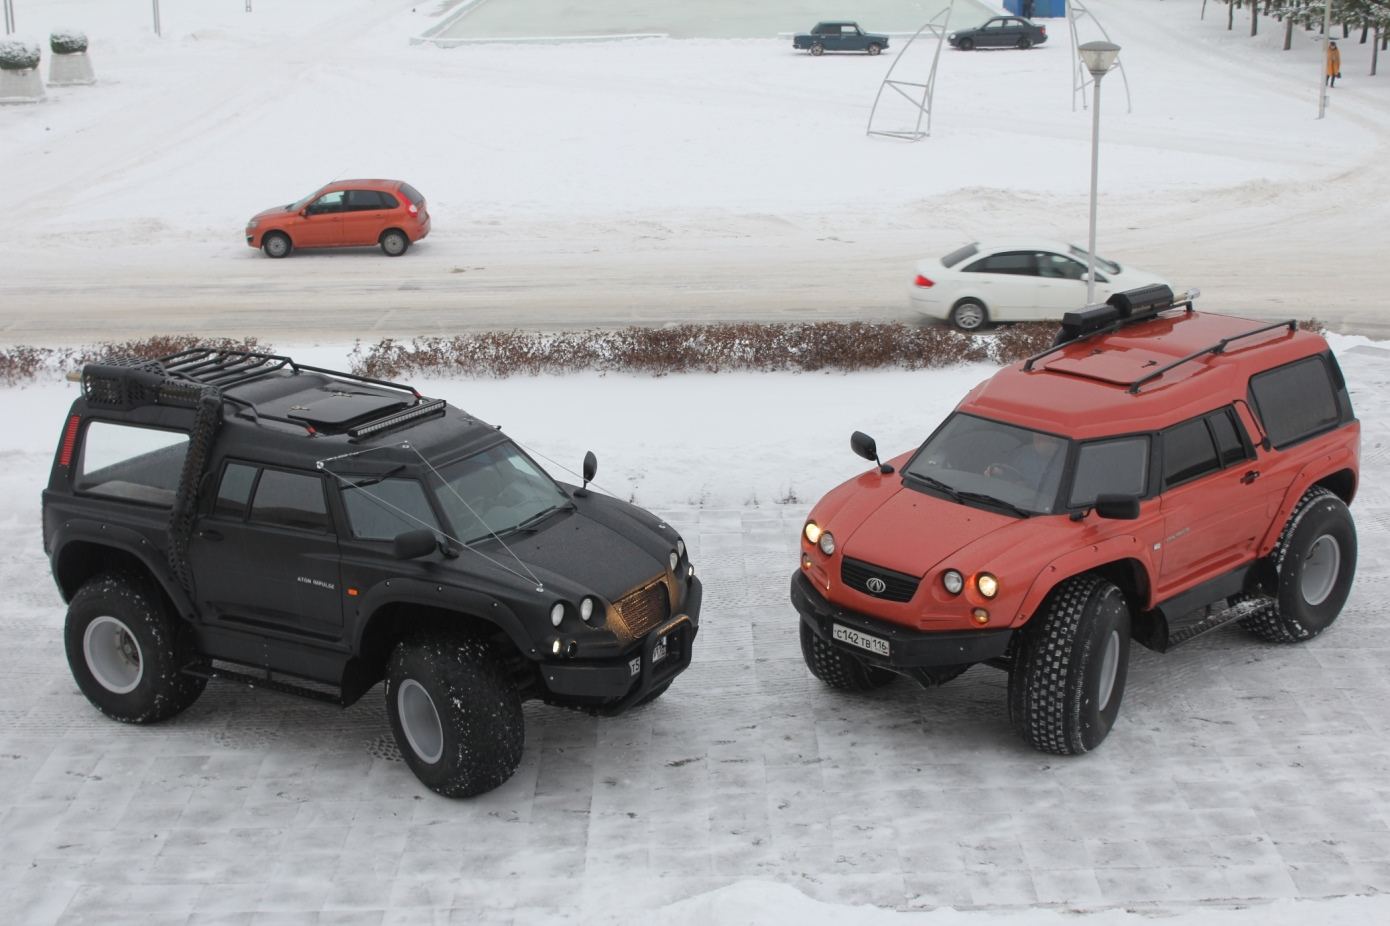 Russian Off Road Vehicles That You Haven't Heard Of - viking